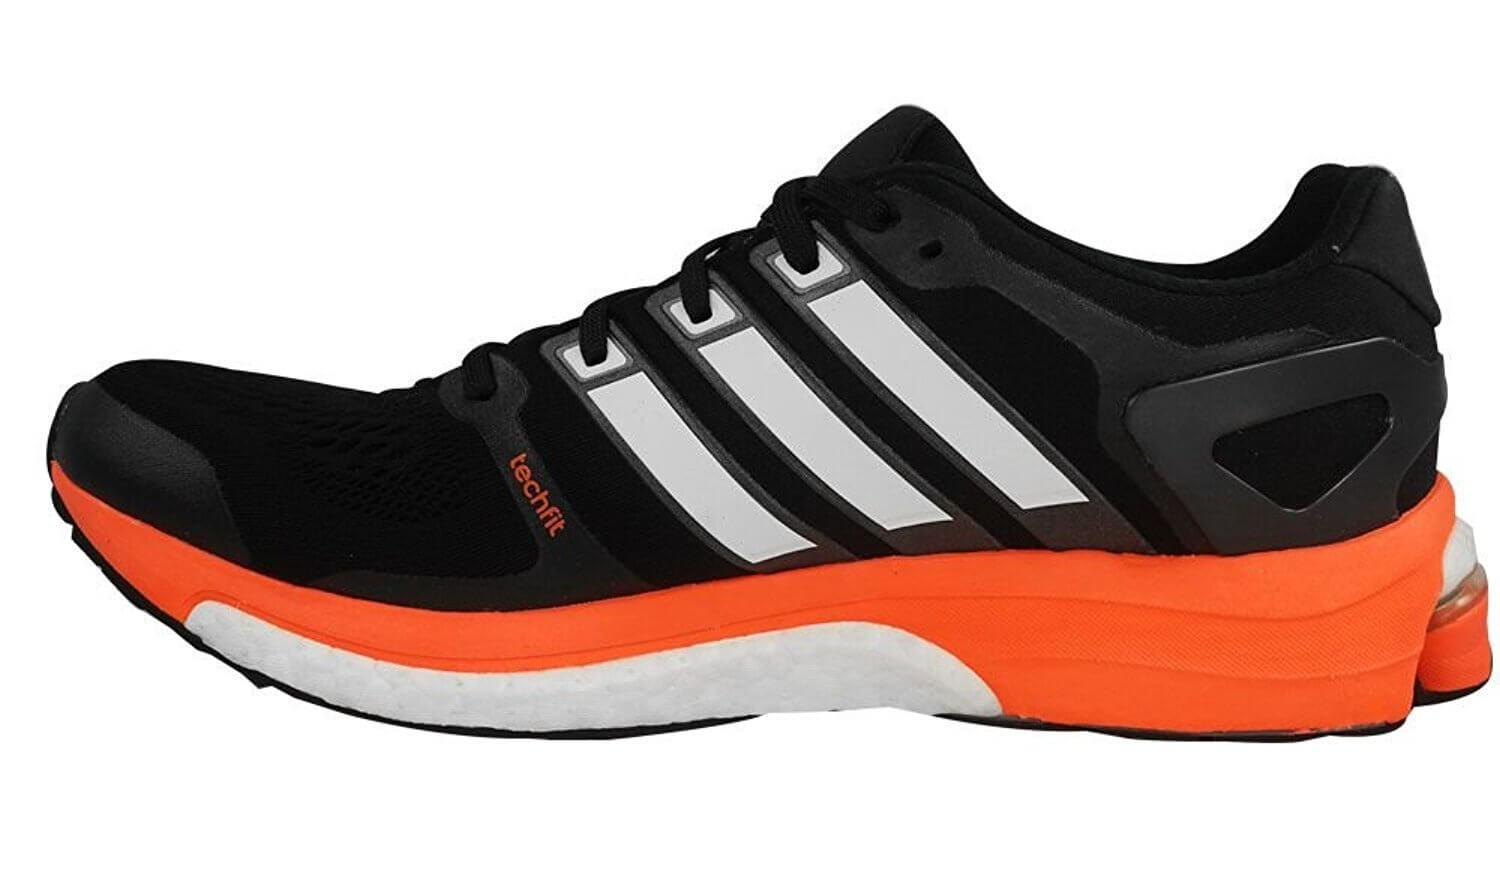 Adidas Adistar Boost ESM midsole technology for responsiveness